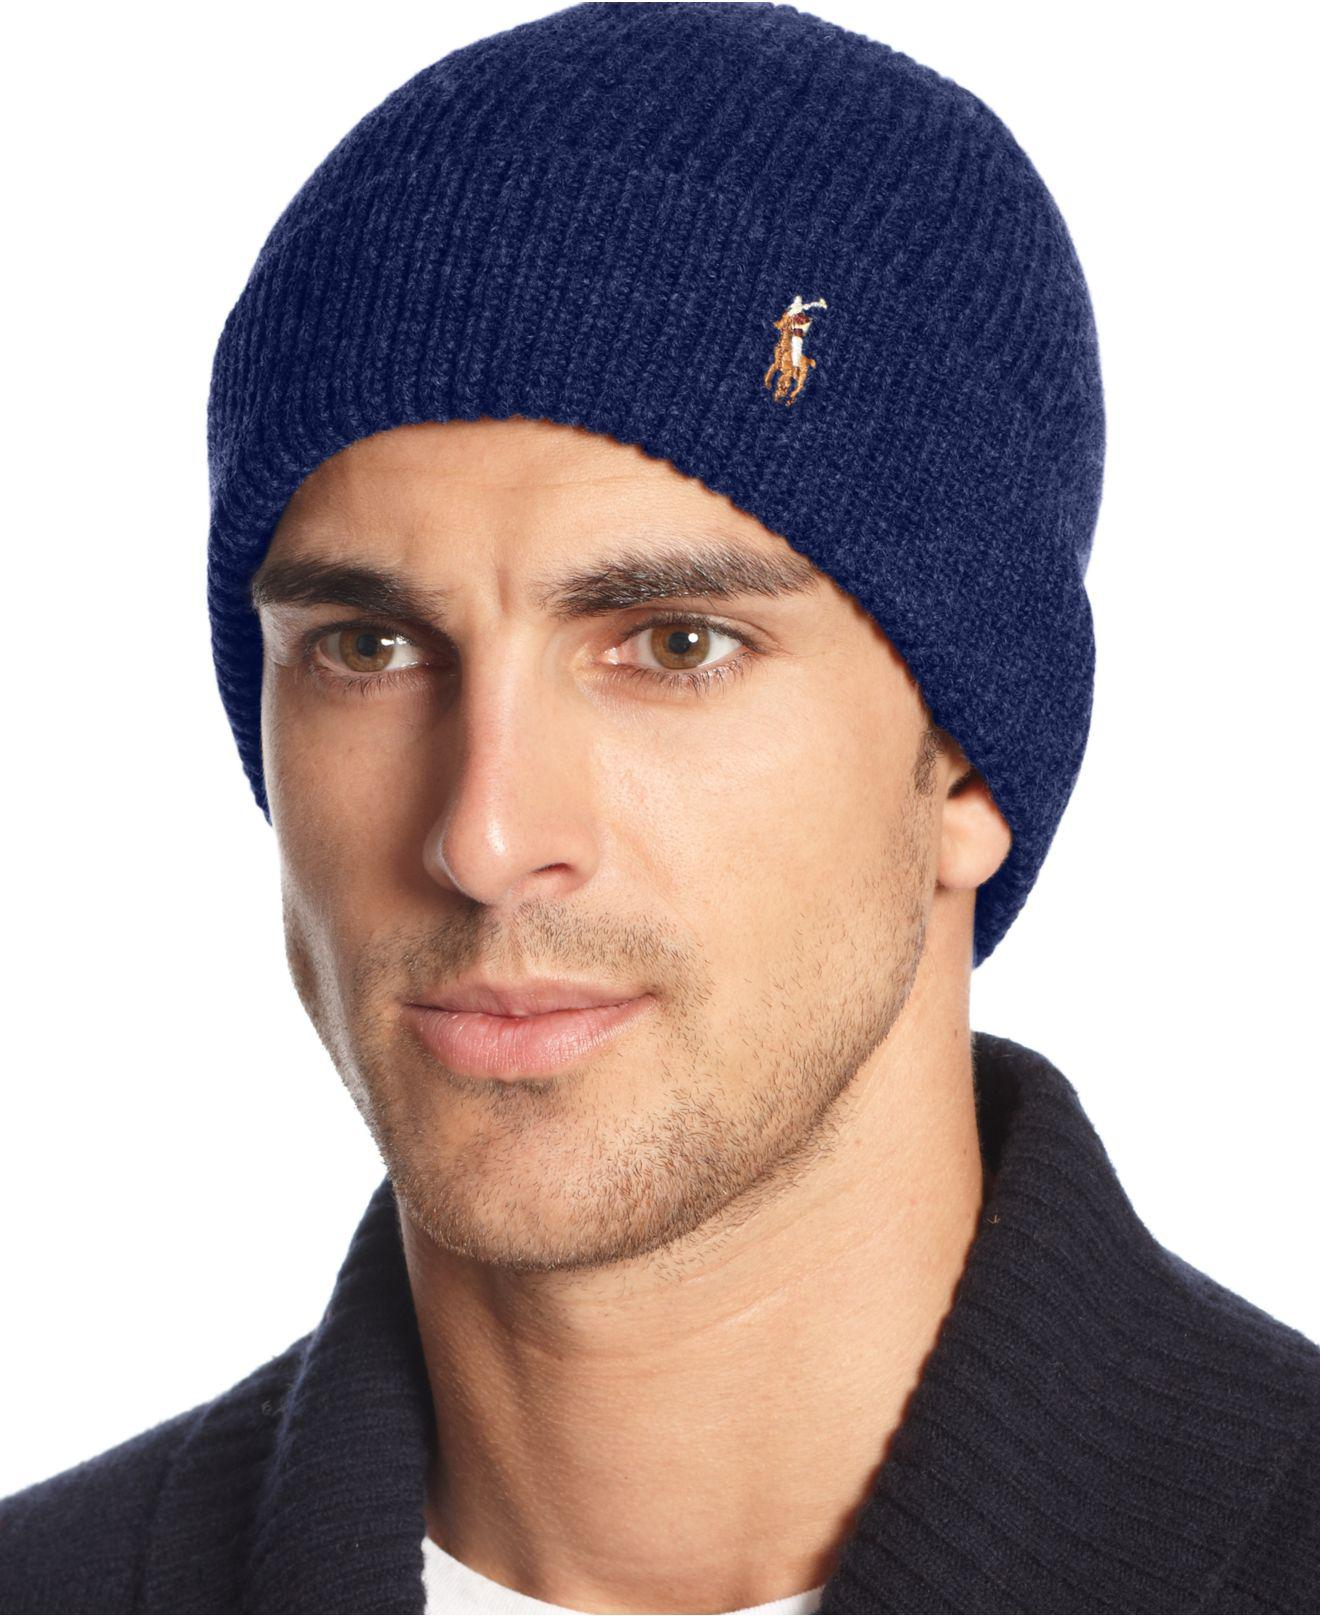 78f5b089 Polo Ralph Lauren Signature Merino Cuffed Beanie in Blue for Men - Lyst